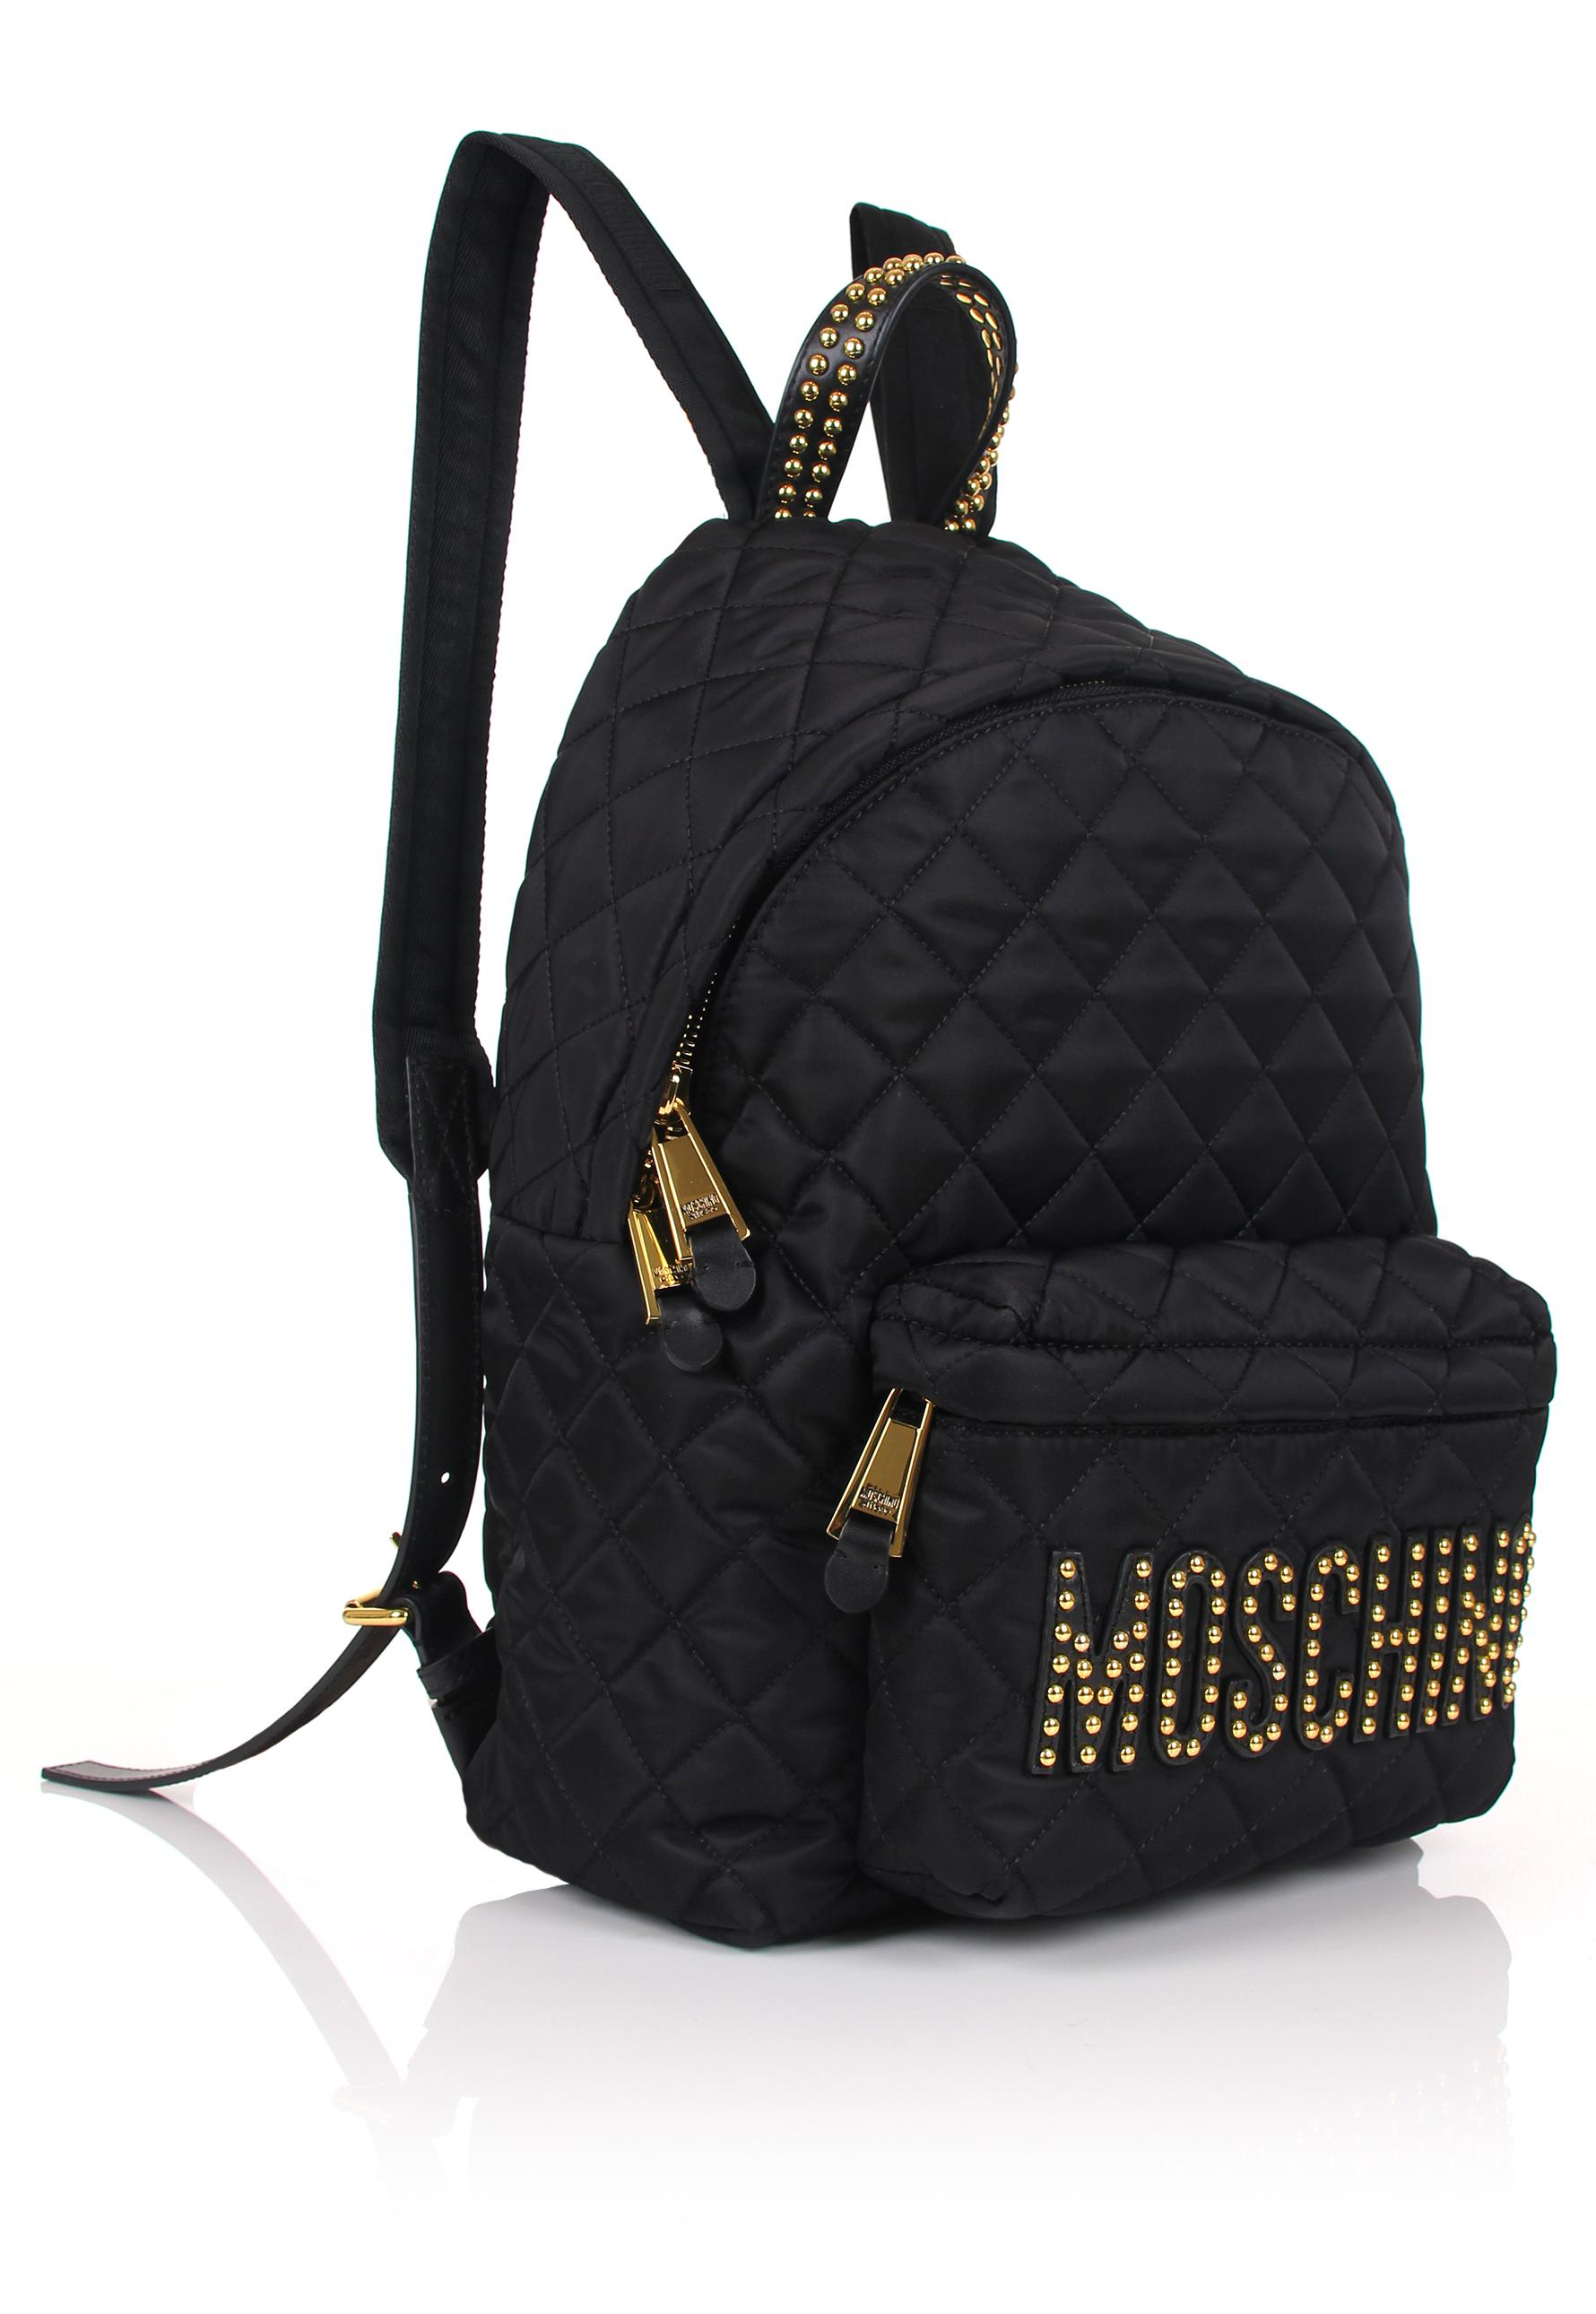 Moschino Quilted Studded Logo Backpack Black in Black - Lyst 6333780e5197f